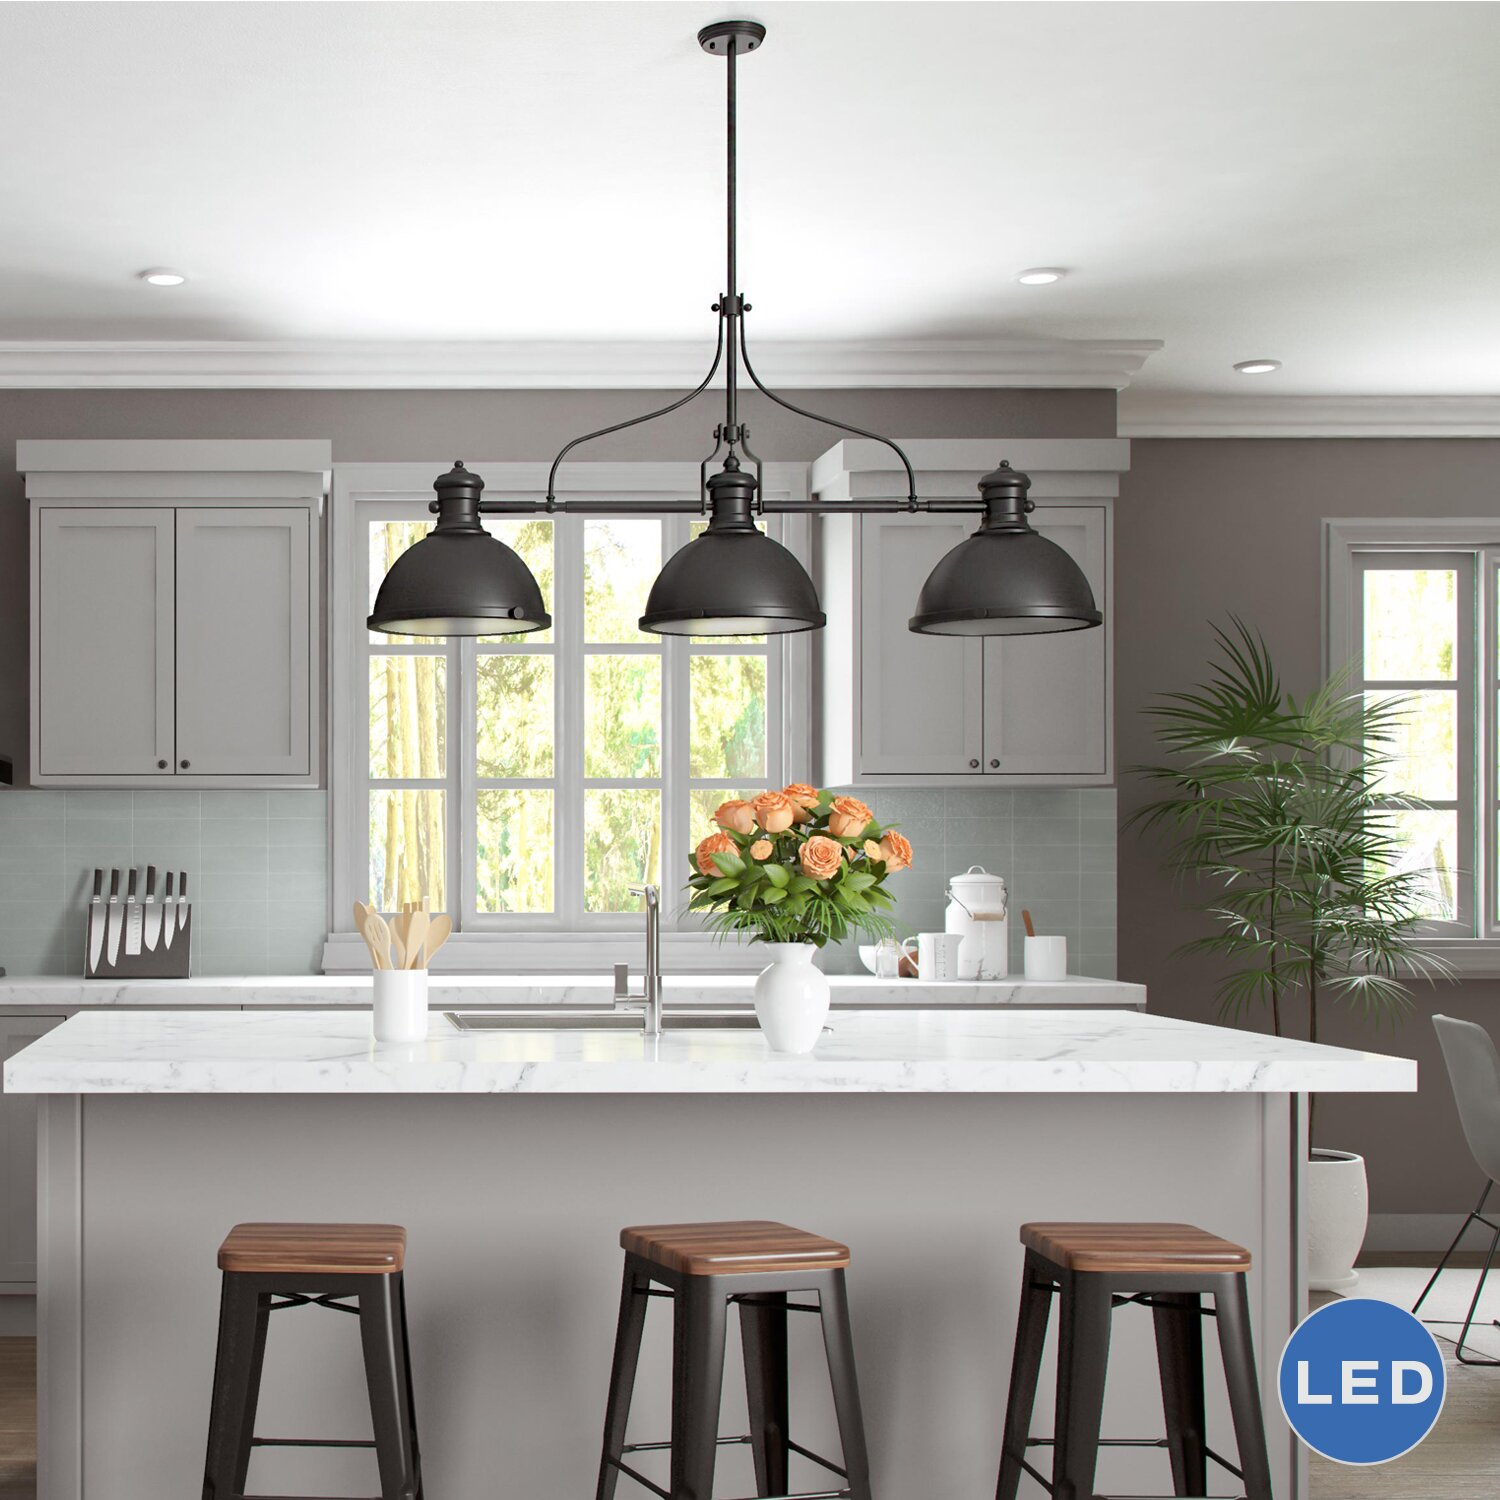 Lighting For The Kitchen: VONNLighting Dorado 3 Light Kitchen Island Pendant